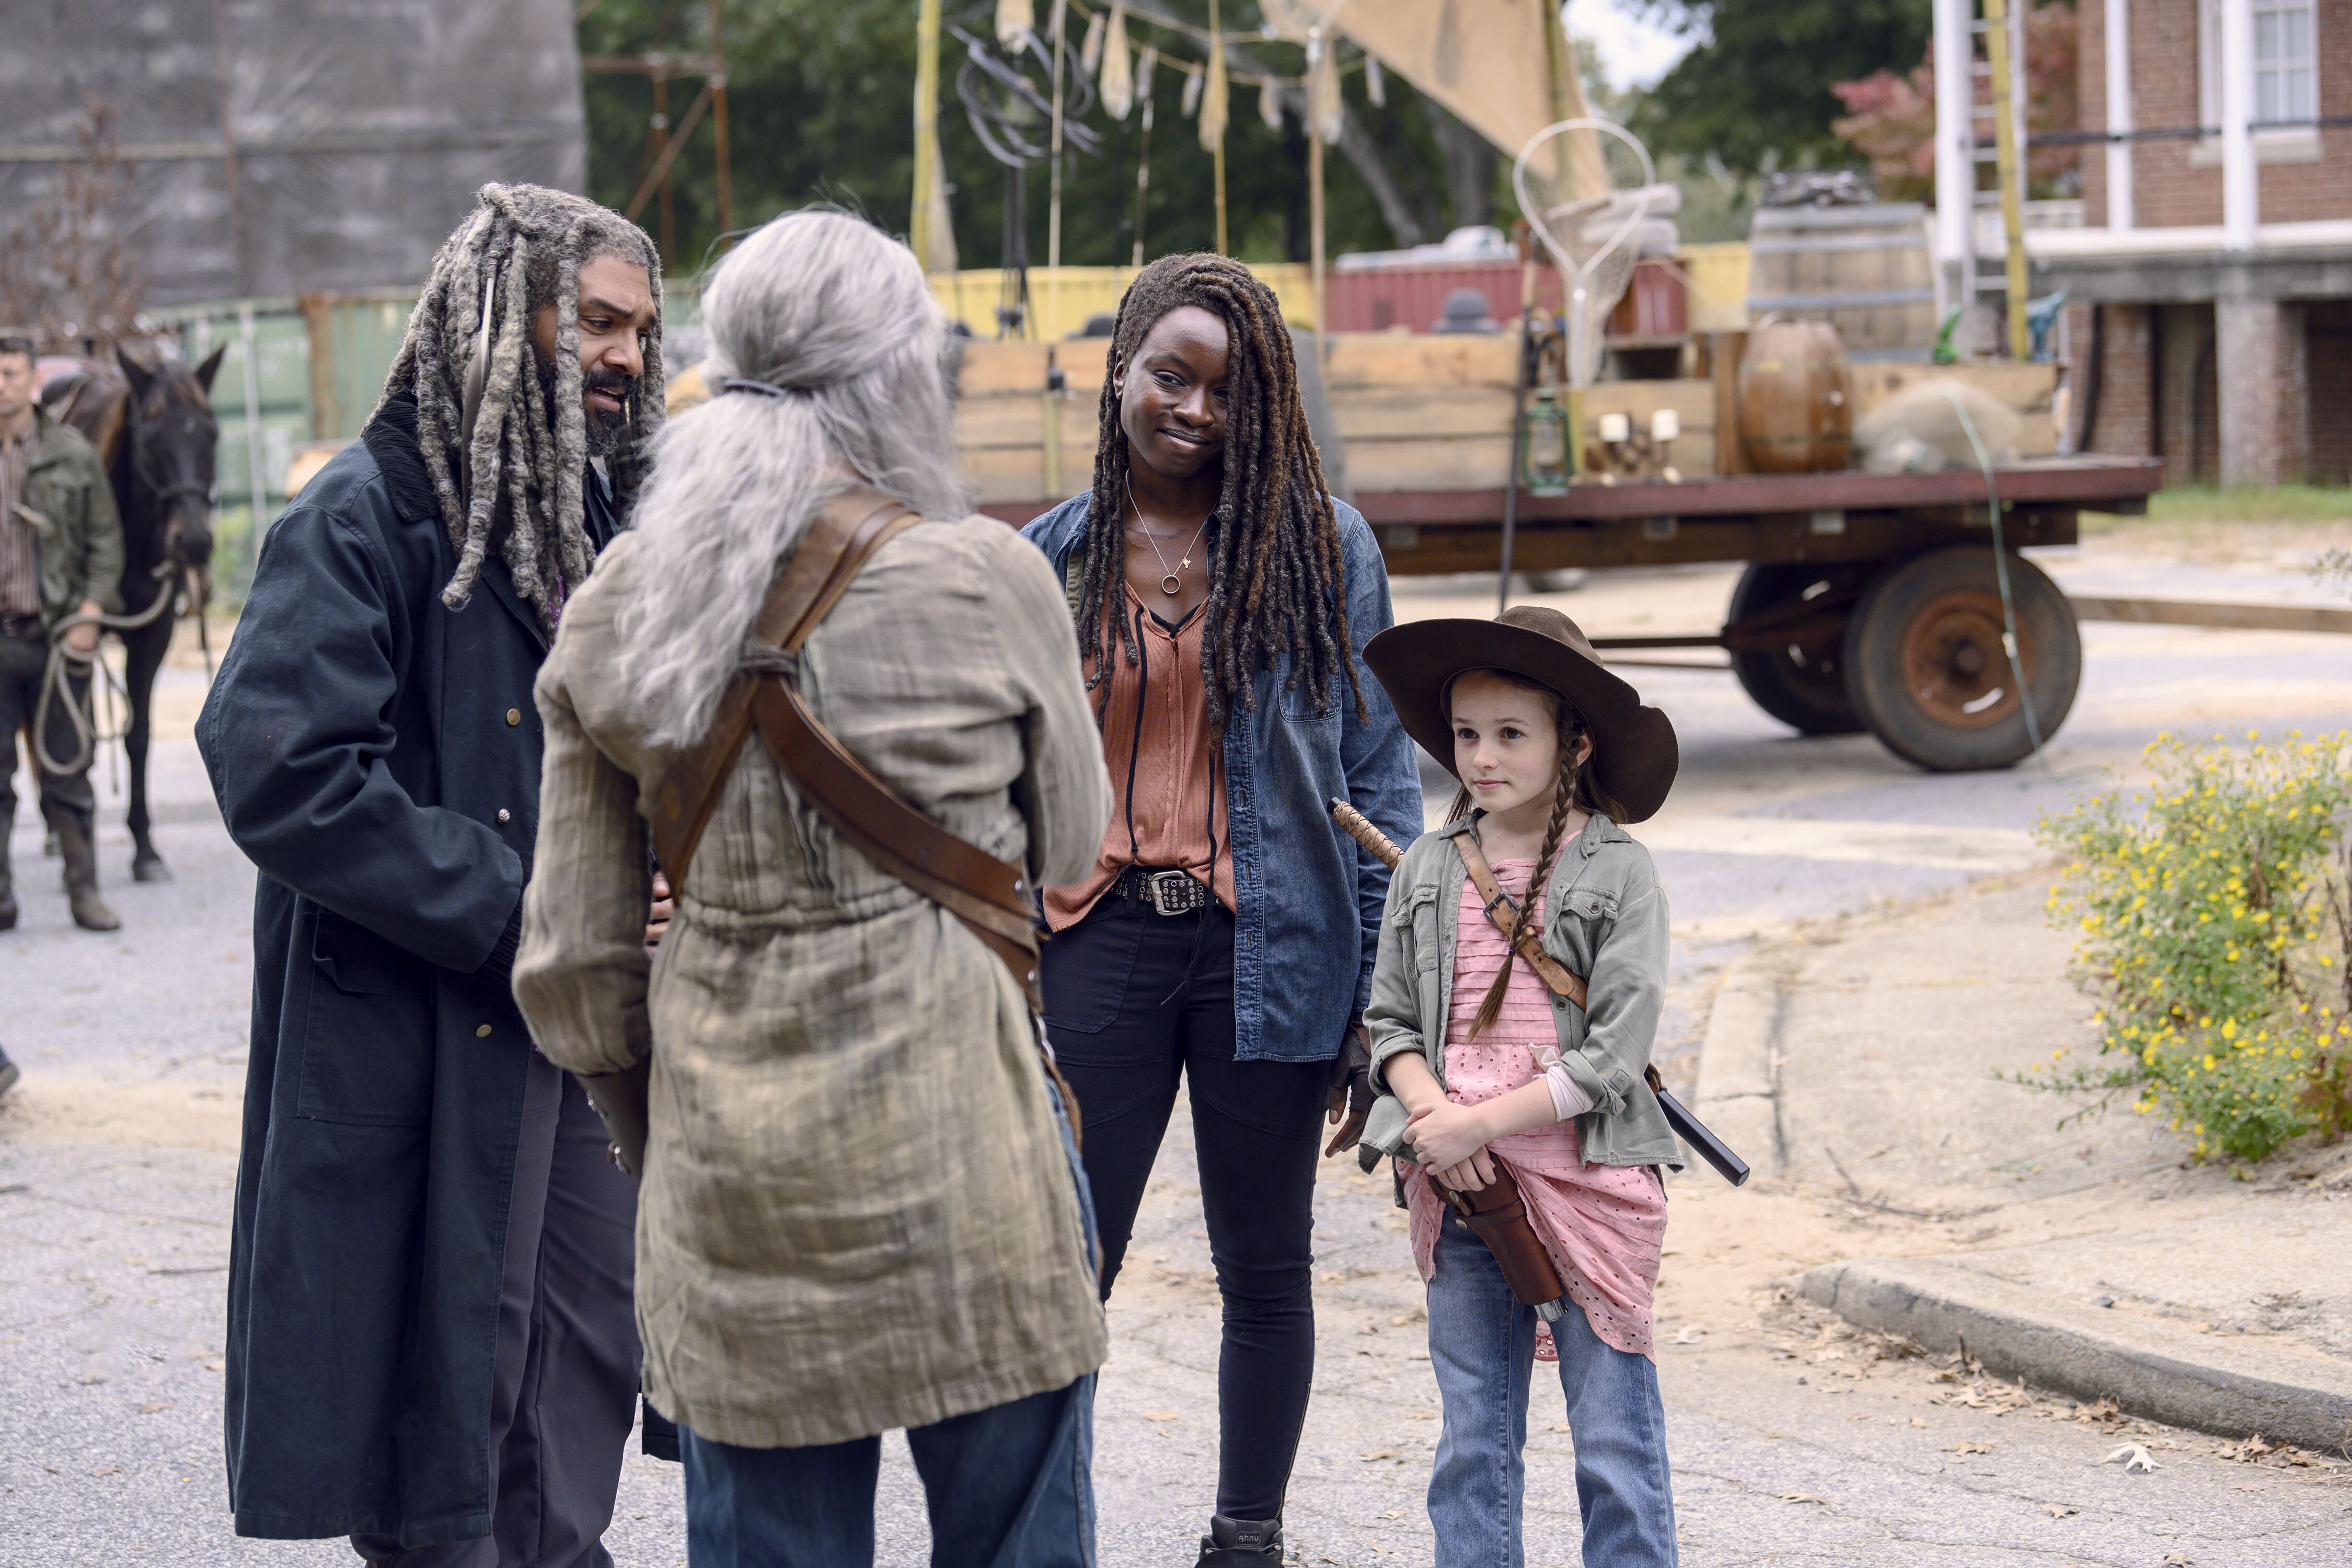 TWD season 10 prediction: Their world has potential to grow